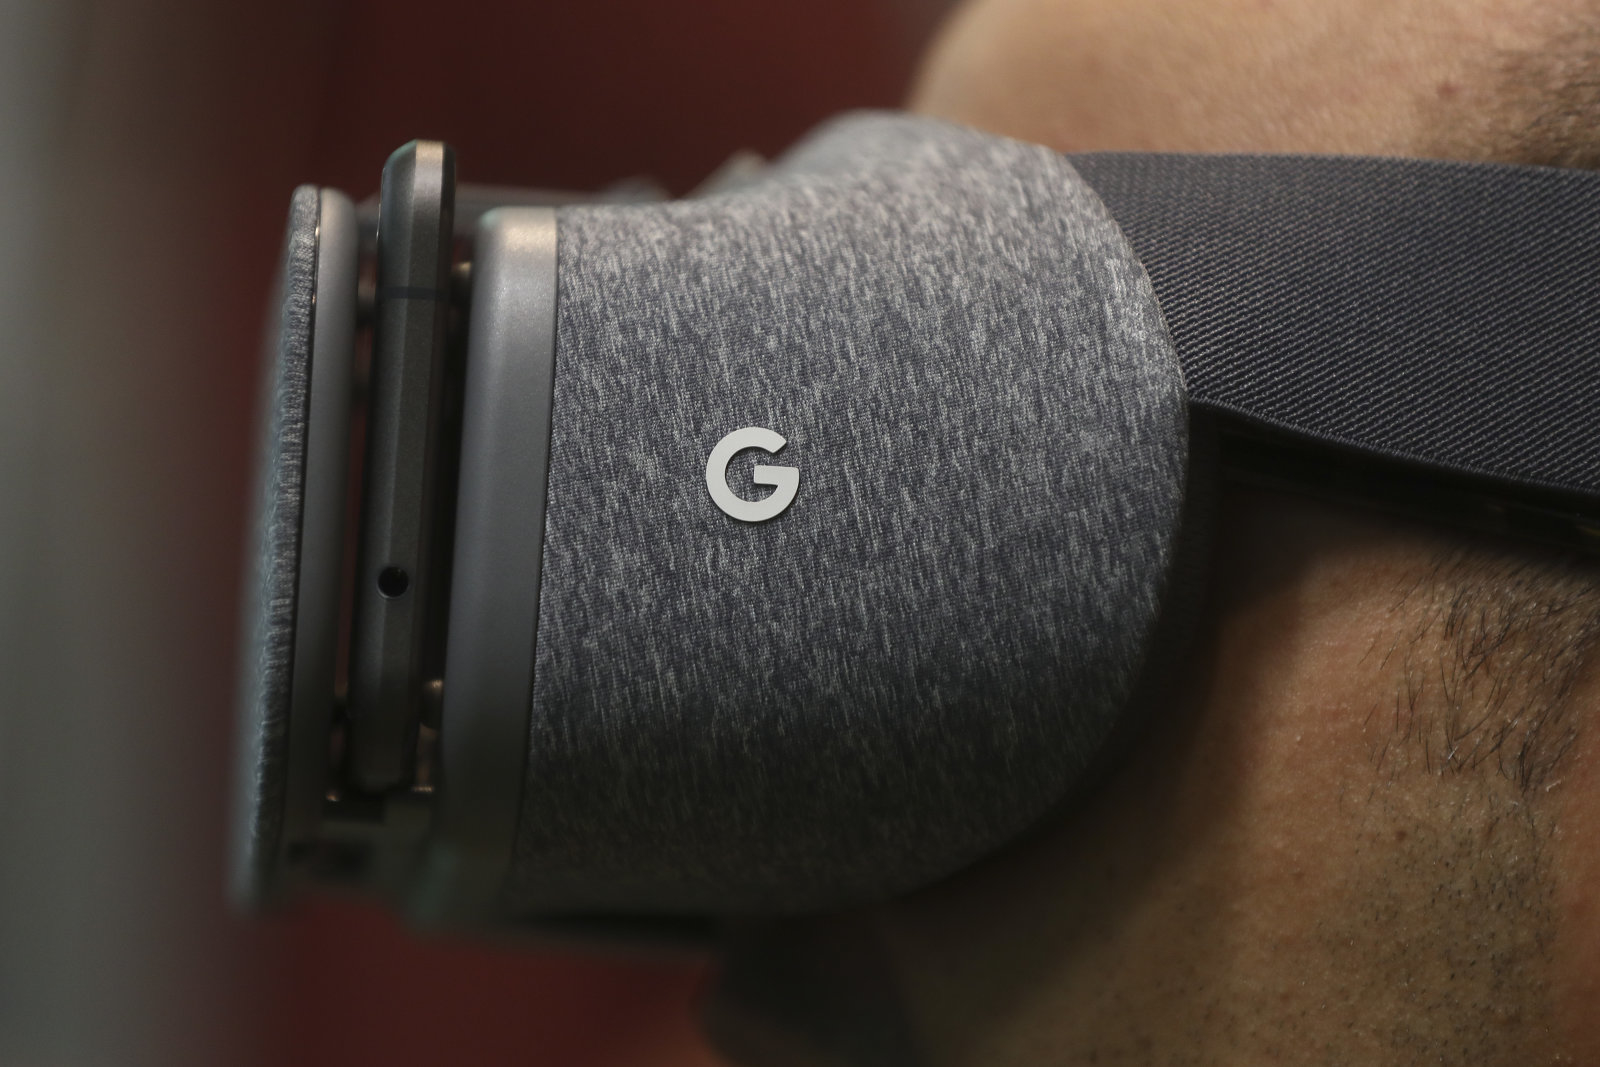 An attendee wears the Google Inc. Daydream View virtual reality (VR) headset during an event at Google's Kings Cross office in London, U.K., on Tuesday, Nov. 15, 2016. After being criticized for not paying its fair share of British tax, Alphabet Inc.s Google unit is trying to show its a good corporate citizen by offering five hours of free digital skills training to all U.K. residents. Photographer: Simon Dawson/Bloomberg via Getty Images